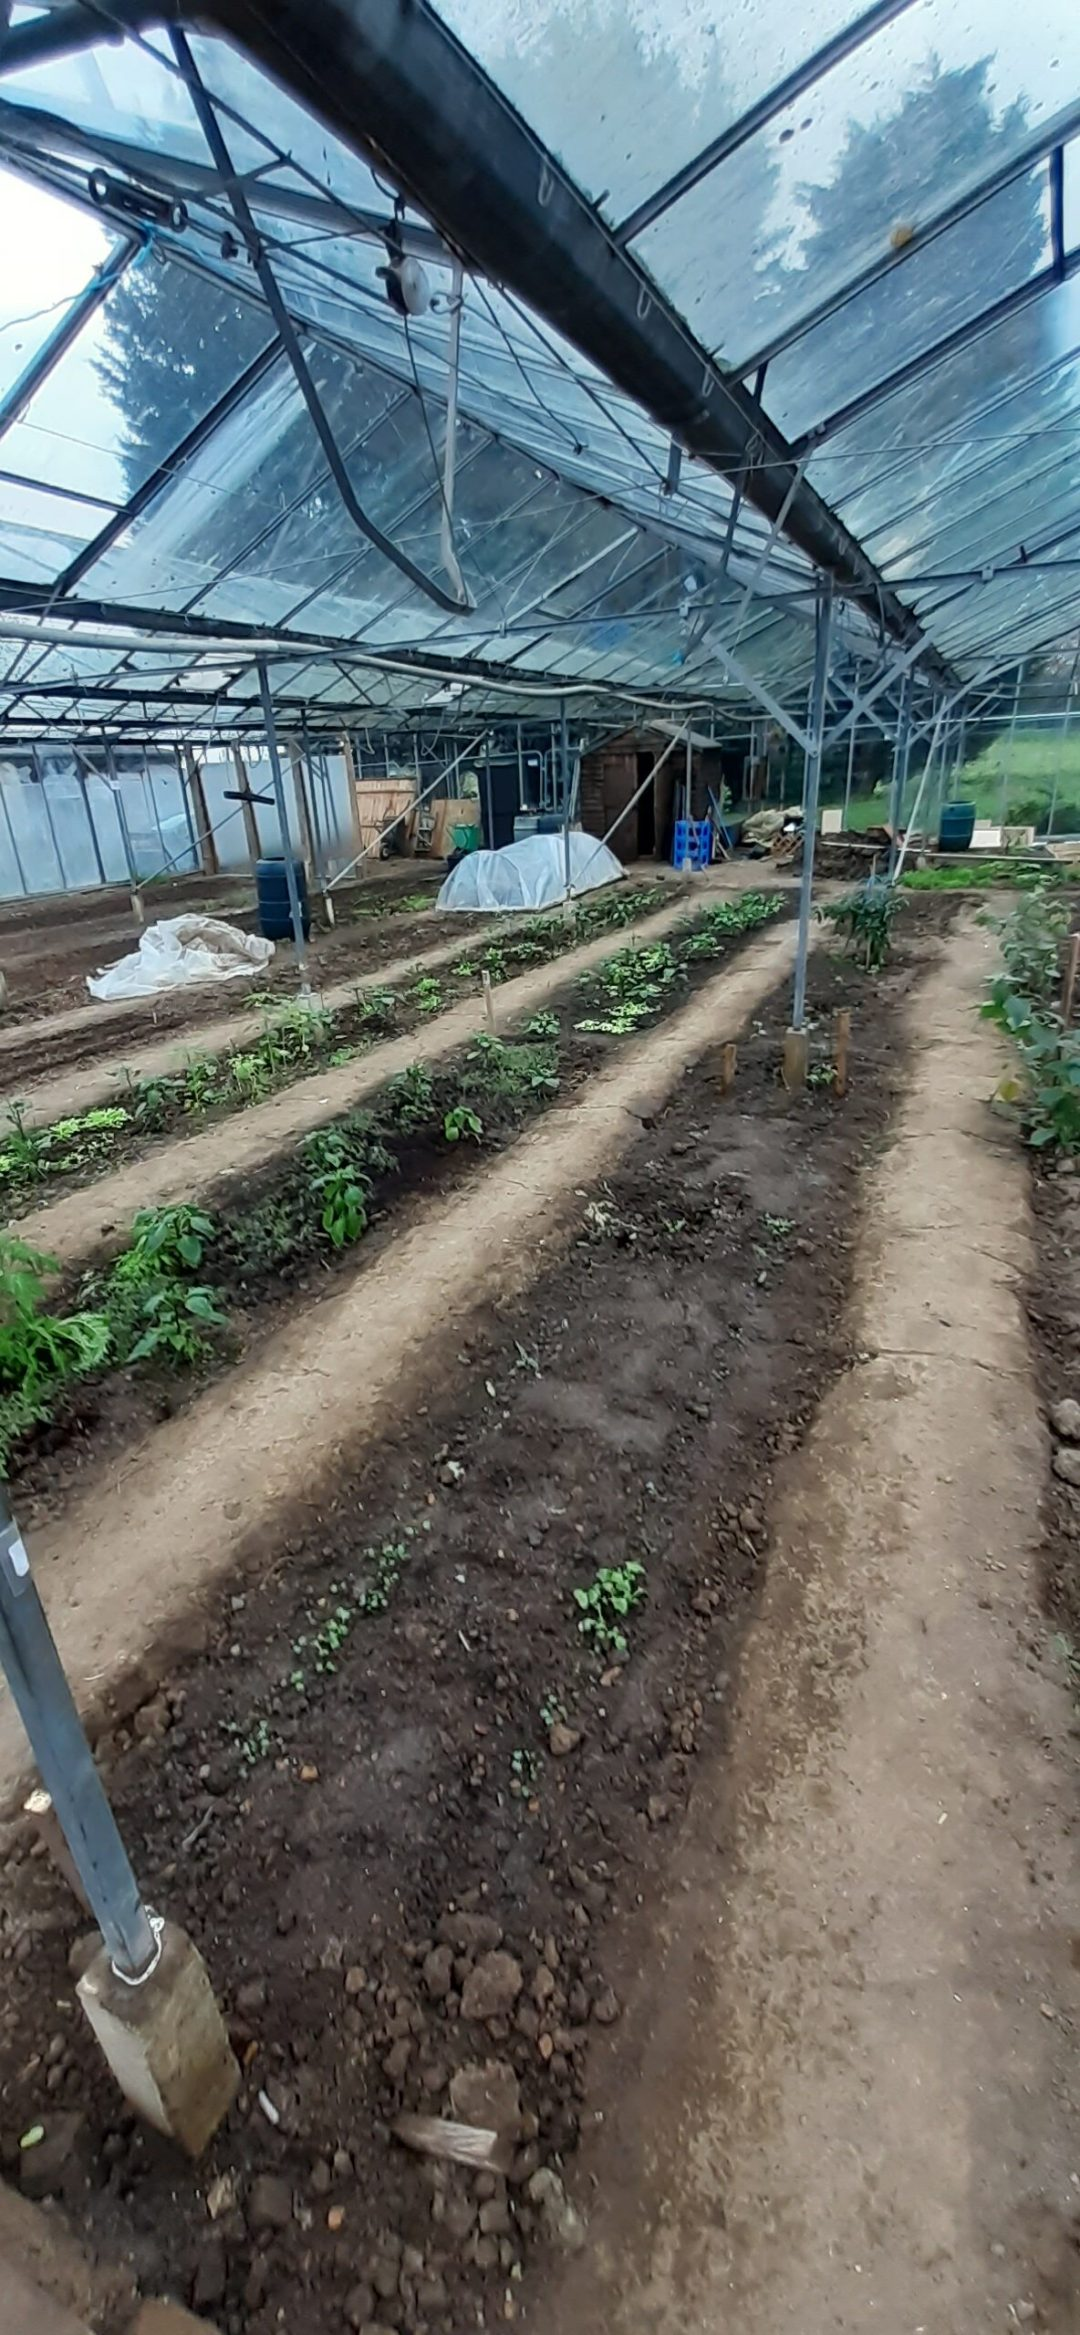 Crops Not Shops - a row of plants under a greenhouse canopy